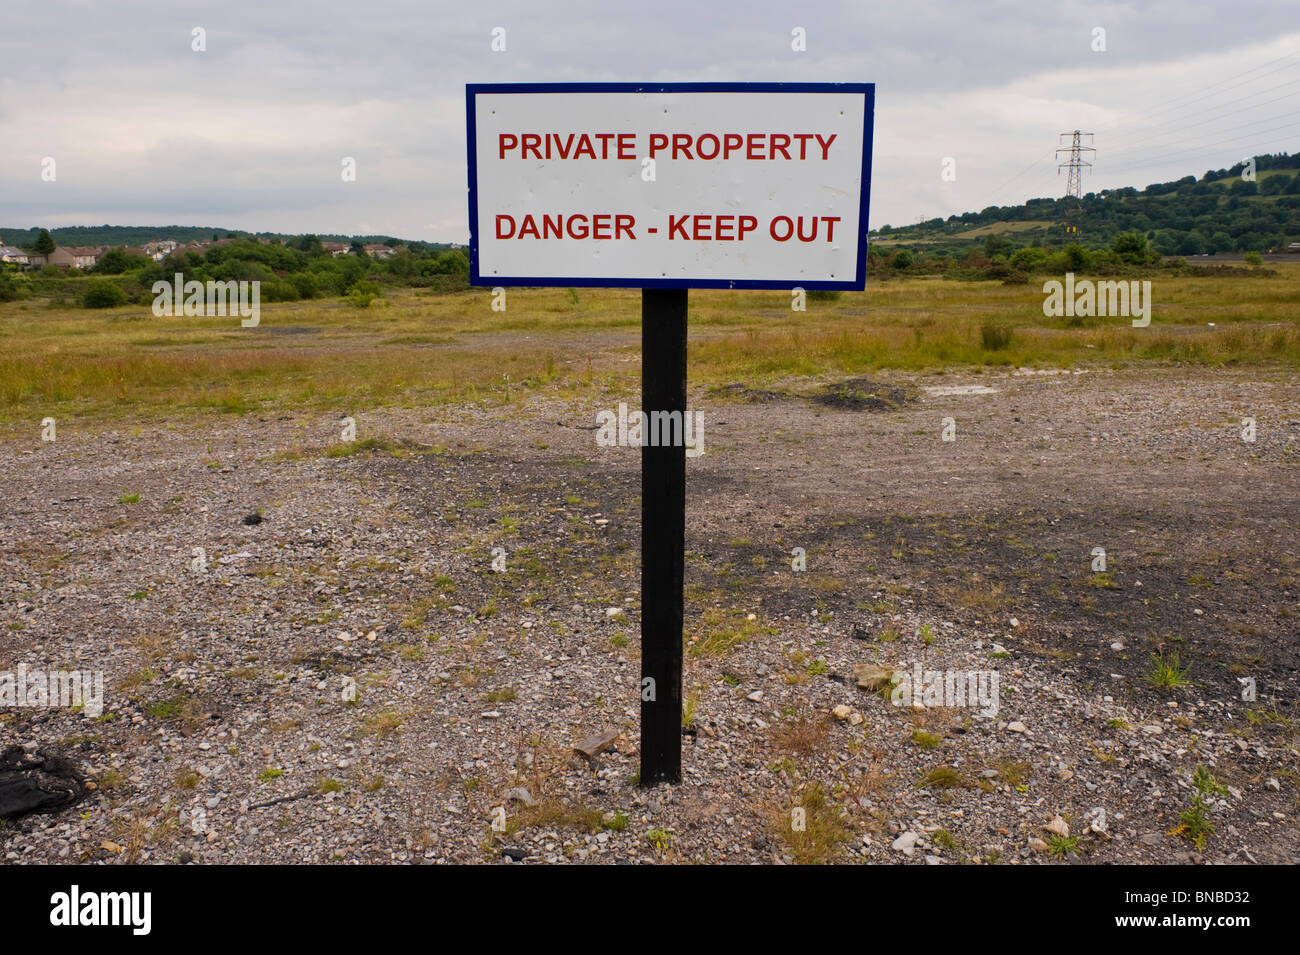 PRIVATE PROPERTY DANGER KEEP OUT sign on former coal mine workings at The British Torfaen South Wales UK - Stock Image